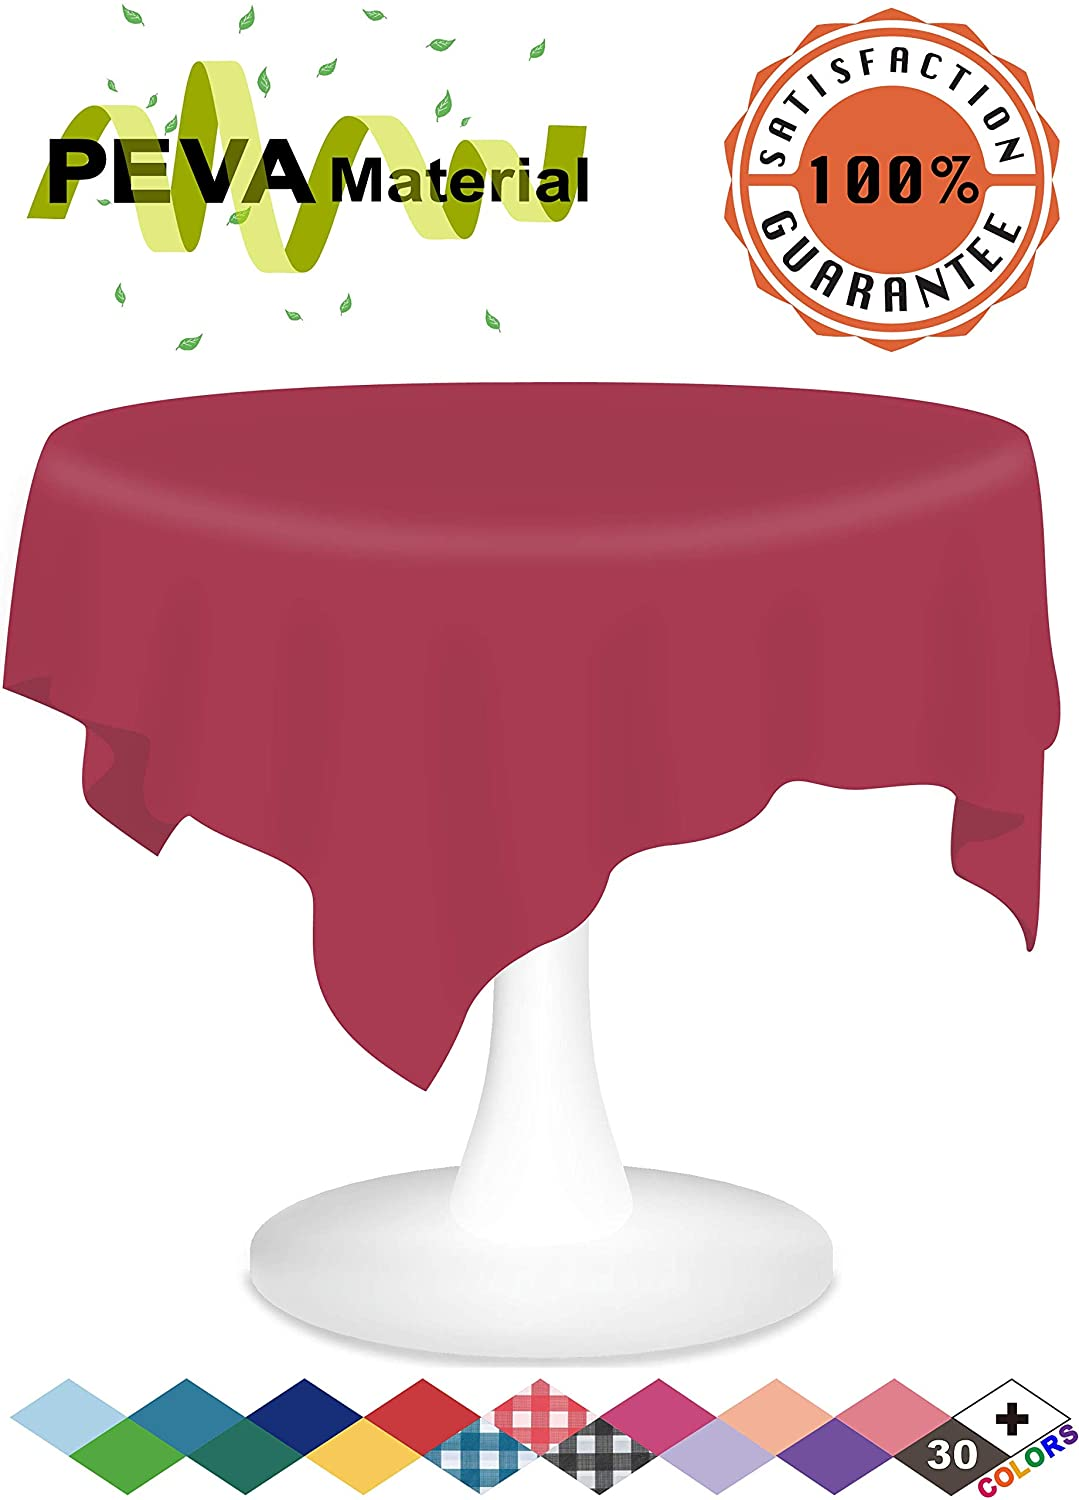 Burgundy Plastic Tablecloths 3 Pack Disposable Table Covers 84 Inches Circle Shower Party Tablecovers PEVA Vinyl Table Cloths for Round Tables up to 6 ft and Picnic BBQ Birthday Wedding Banquet